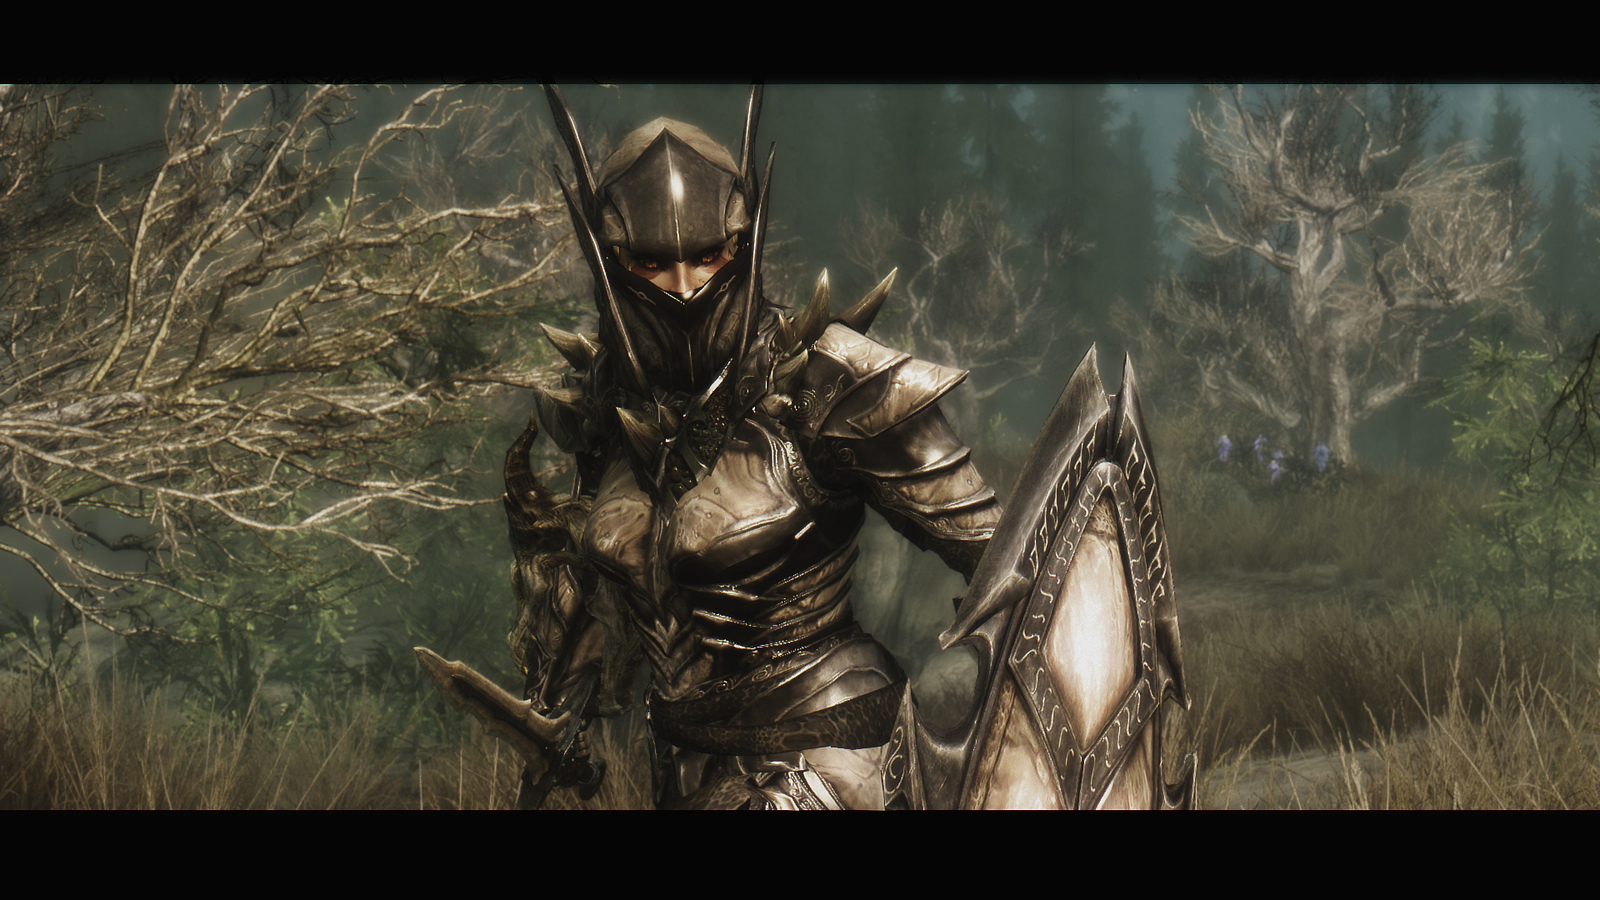 Steam Workshop Dragon Knight Armor A complete, updated list of all armor item ids in the ark video game and its dlcs. steam workshop dragon knight armor